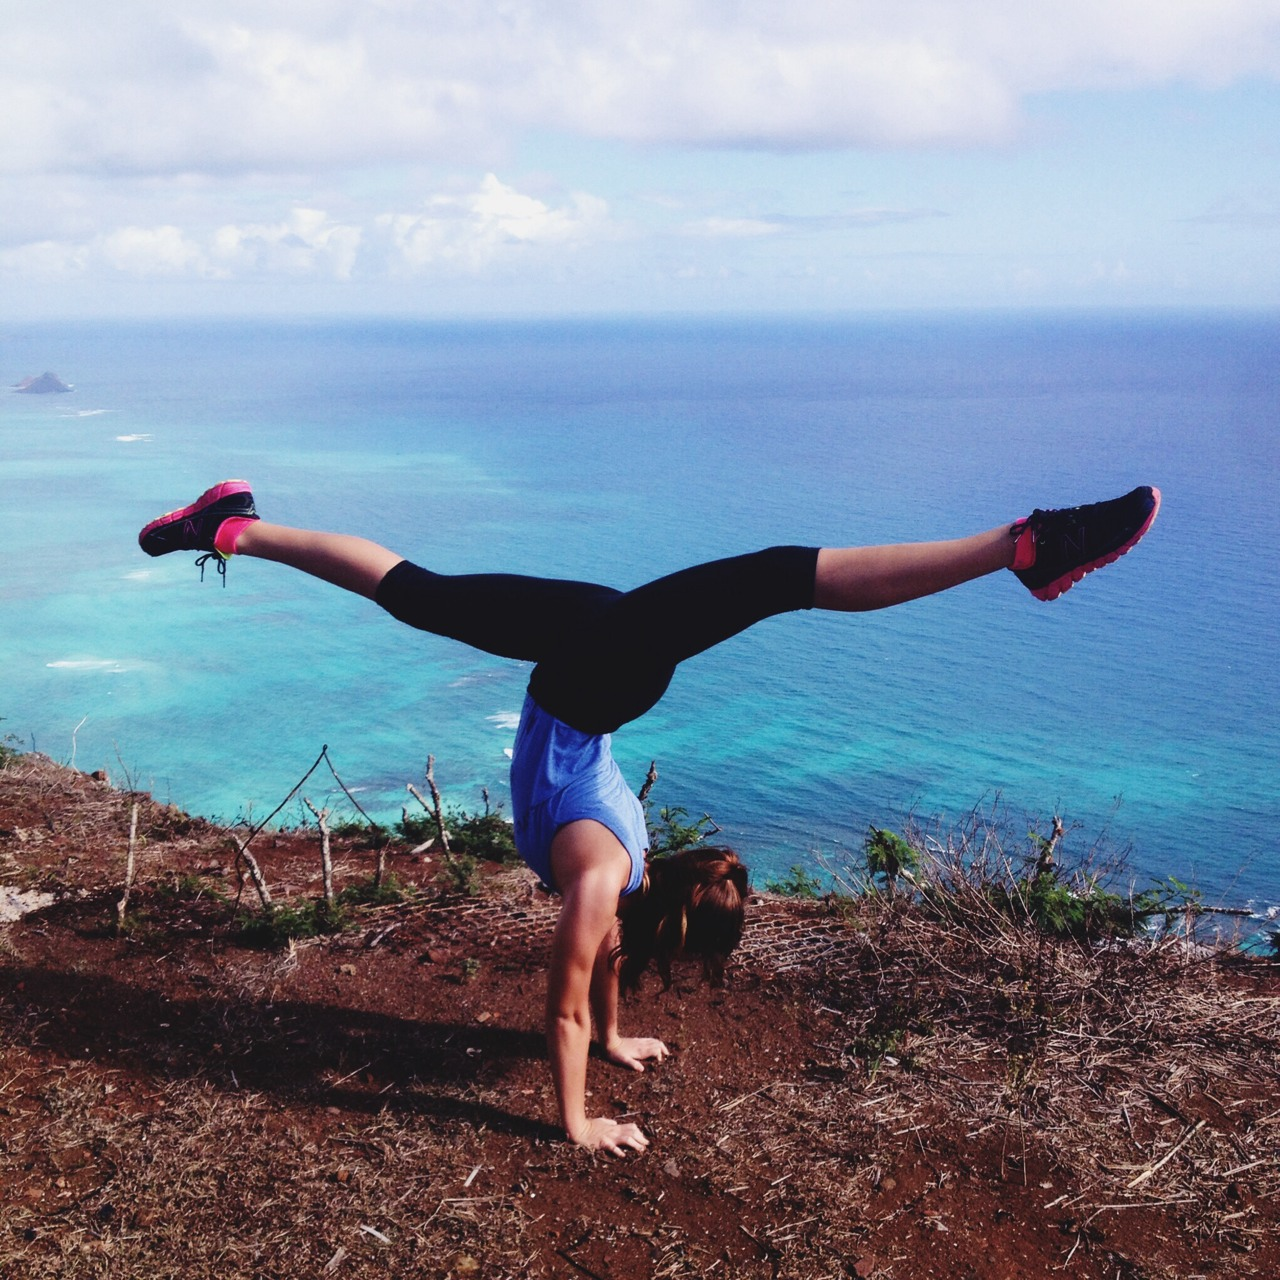 100 Incredible Yoga Photos That Will Inspire You To Start Now!